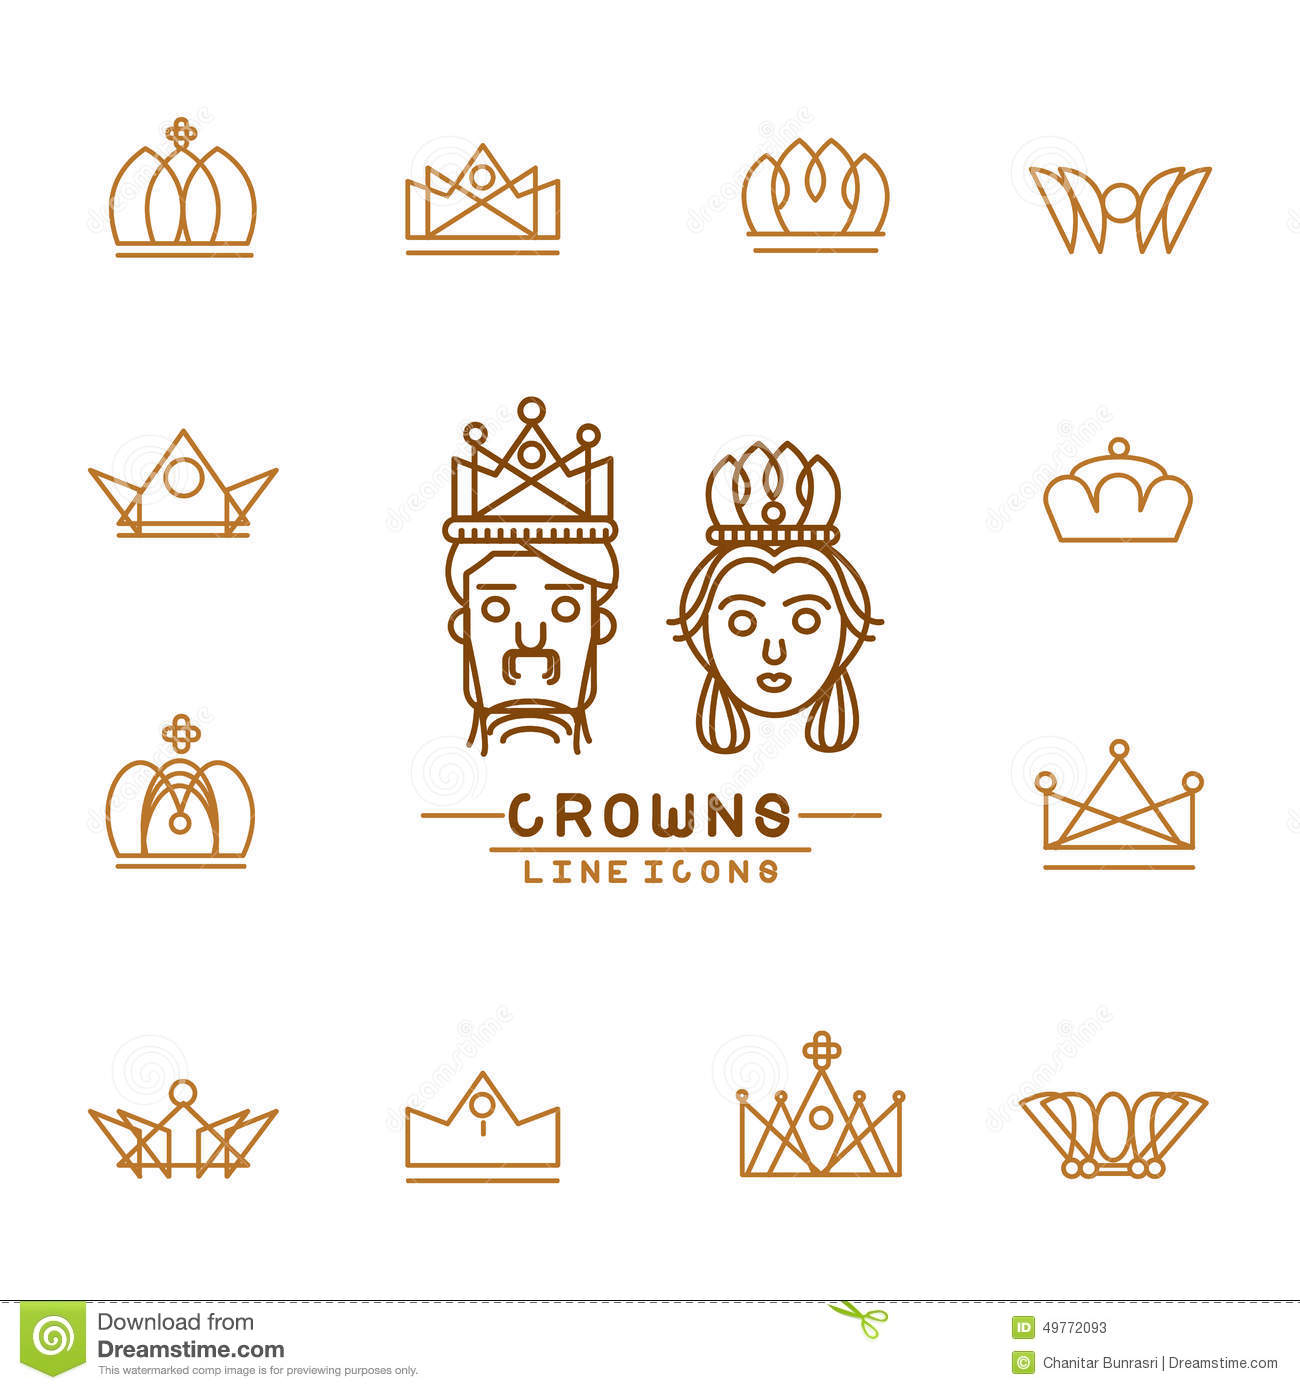 Graphic Design Elements Line : Set of crown line icons stock vector illustration